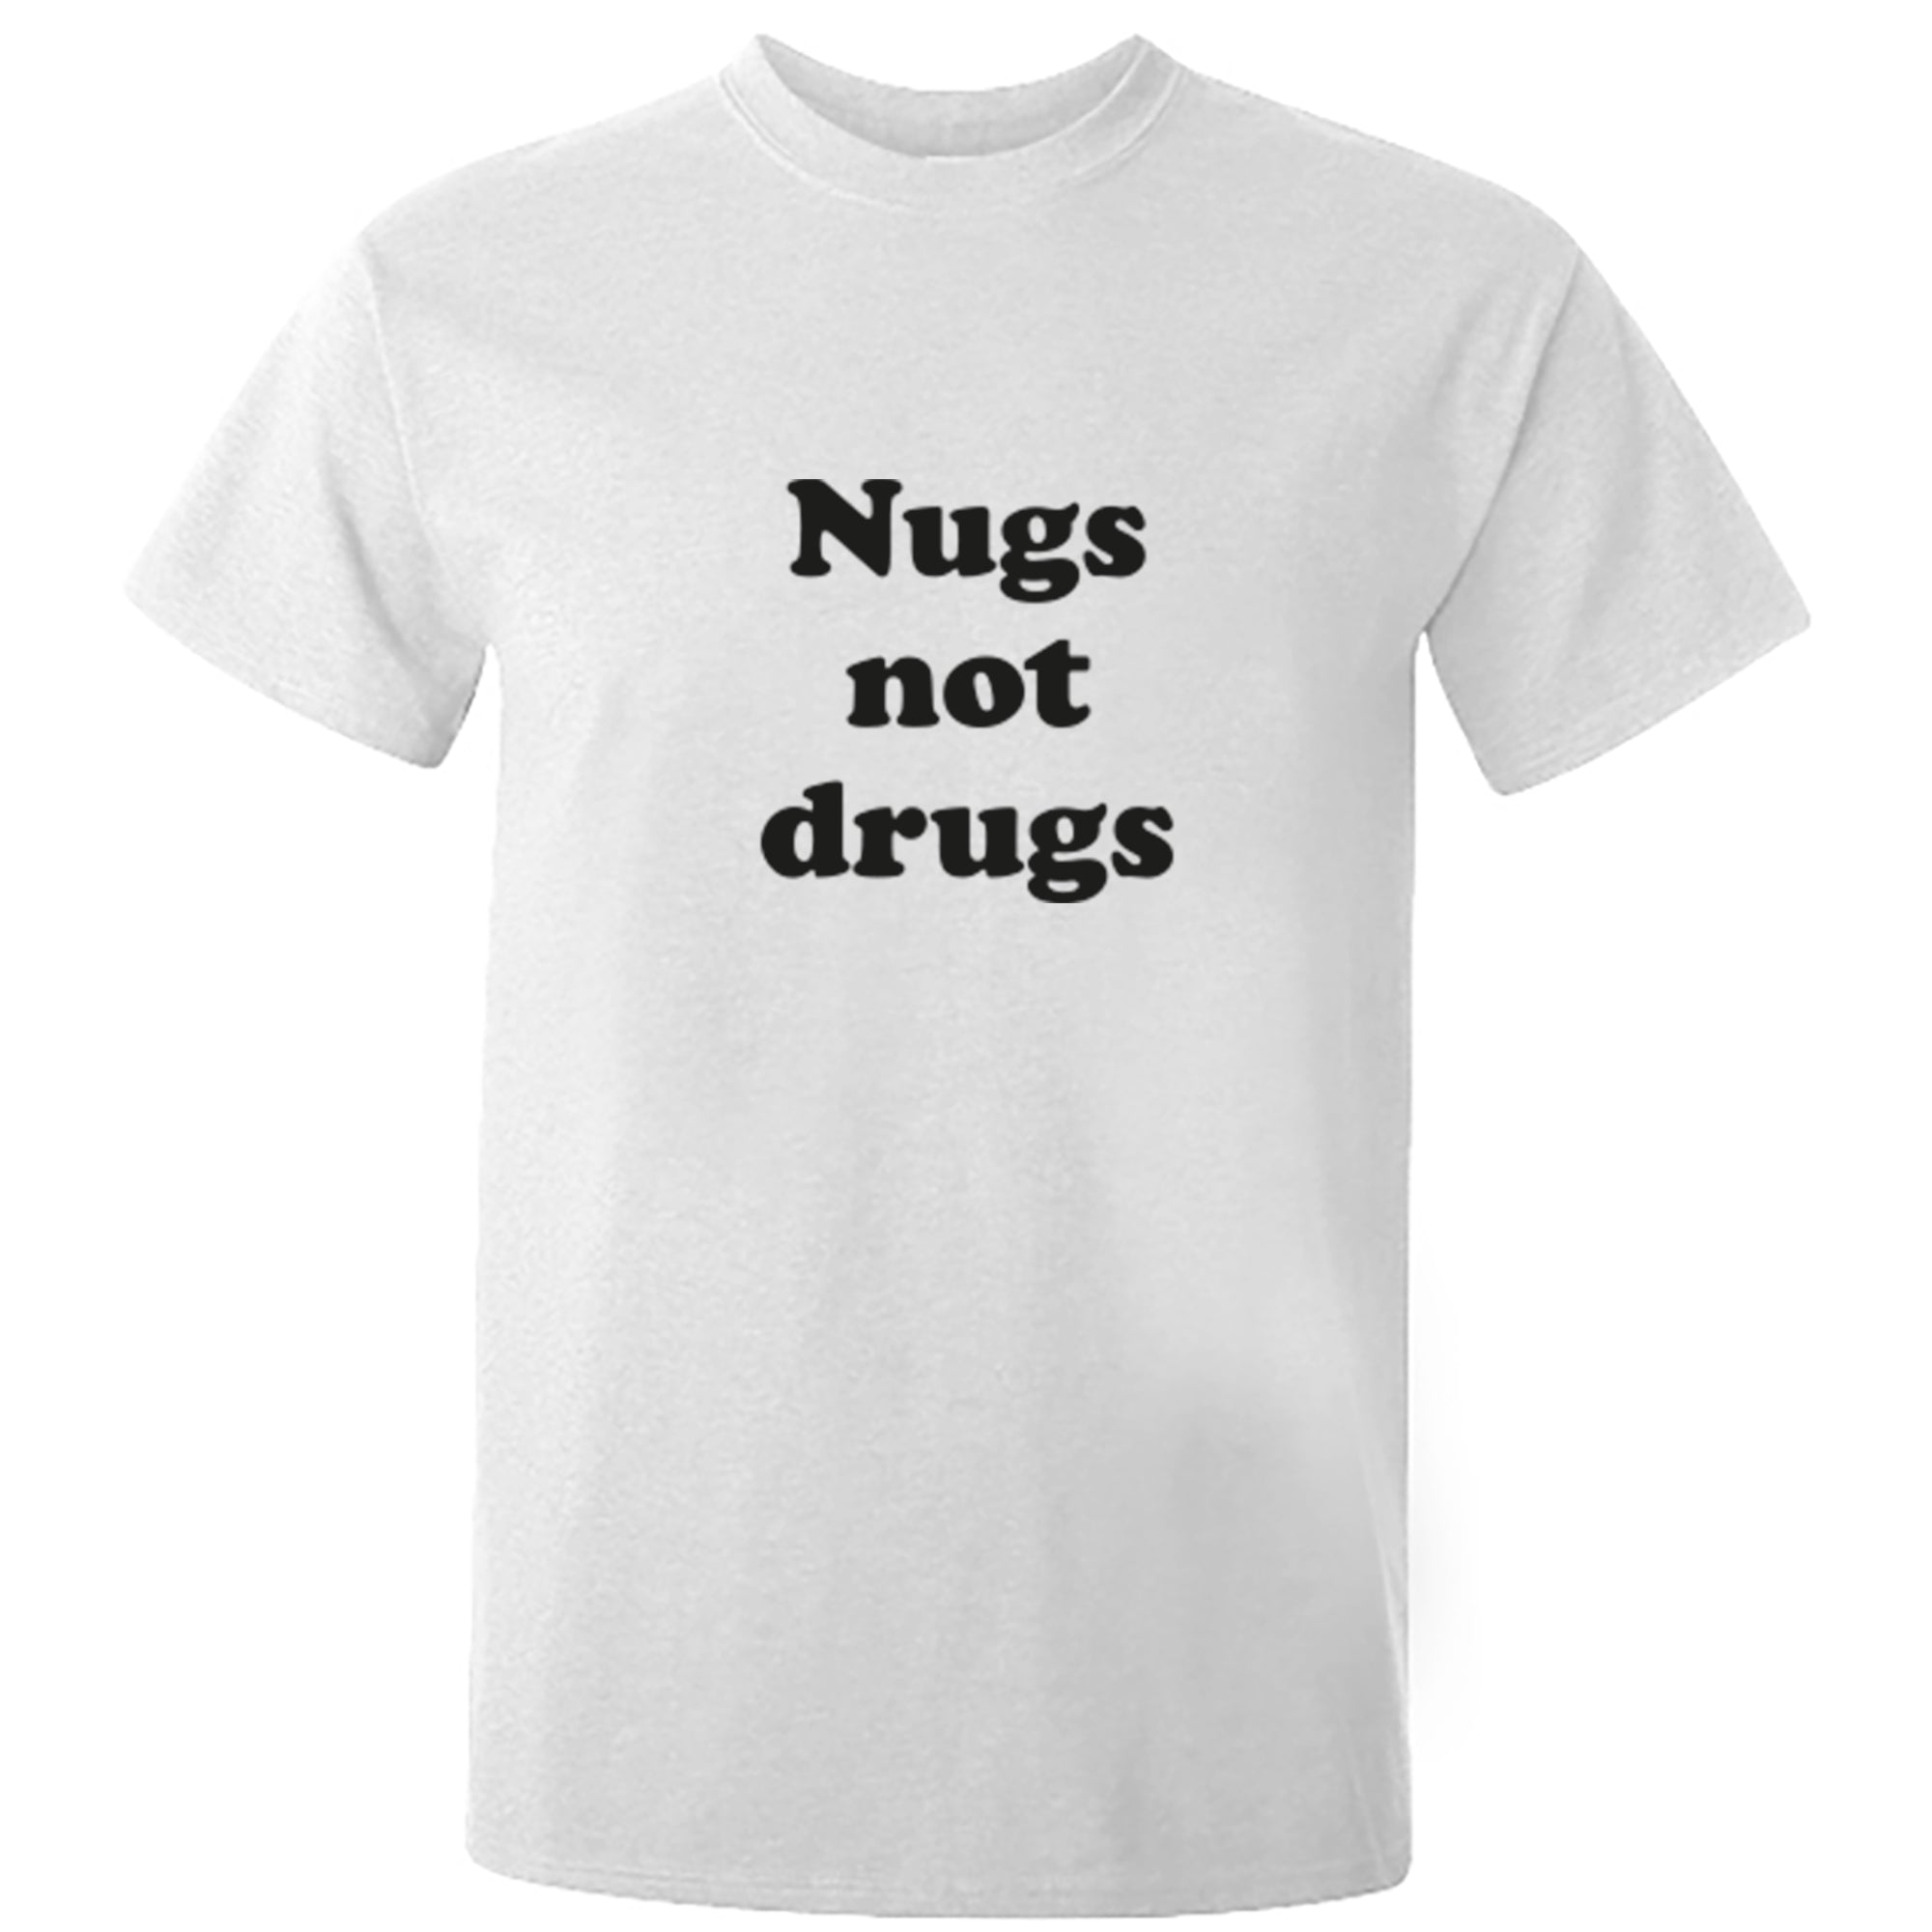 Nugs Not Drugs Unisex Fit T-Shirt S0952 - Illustrated Identity Ltd.